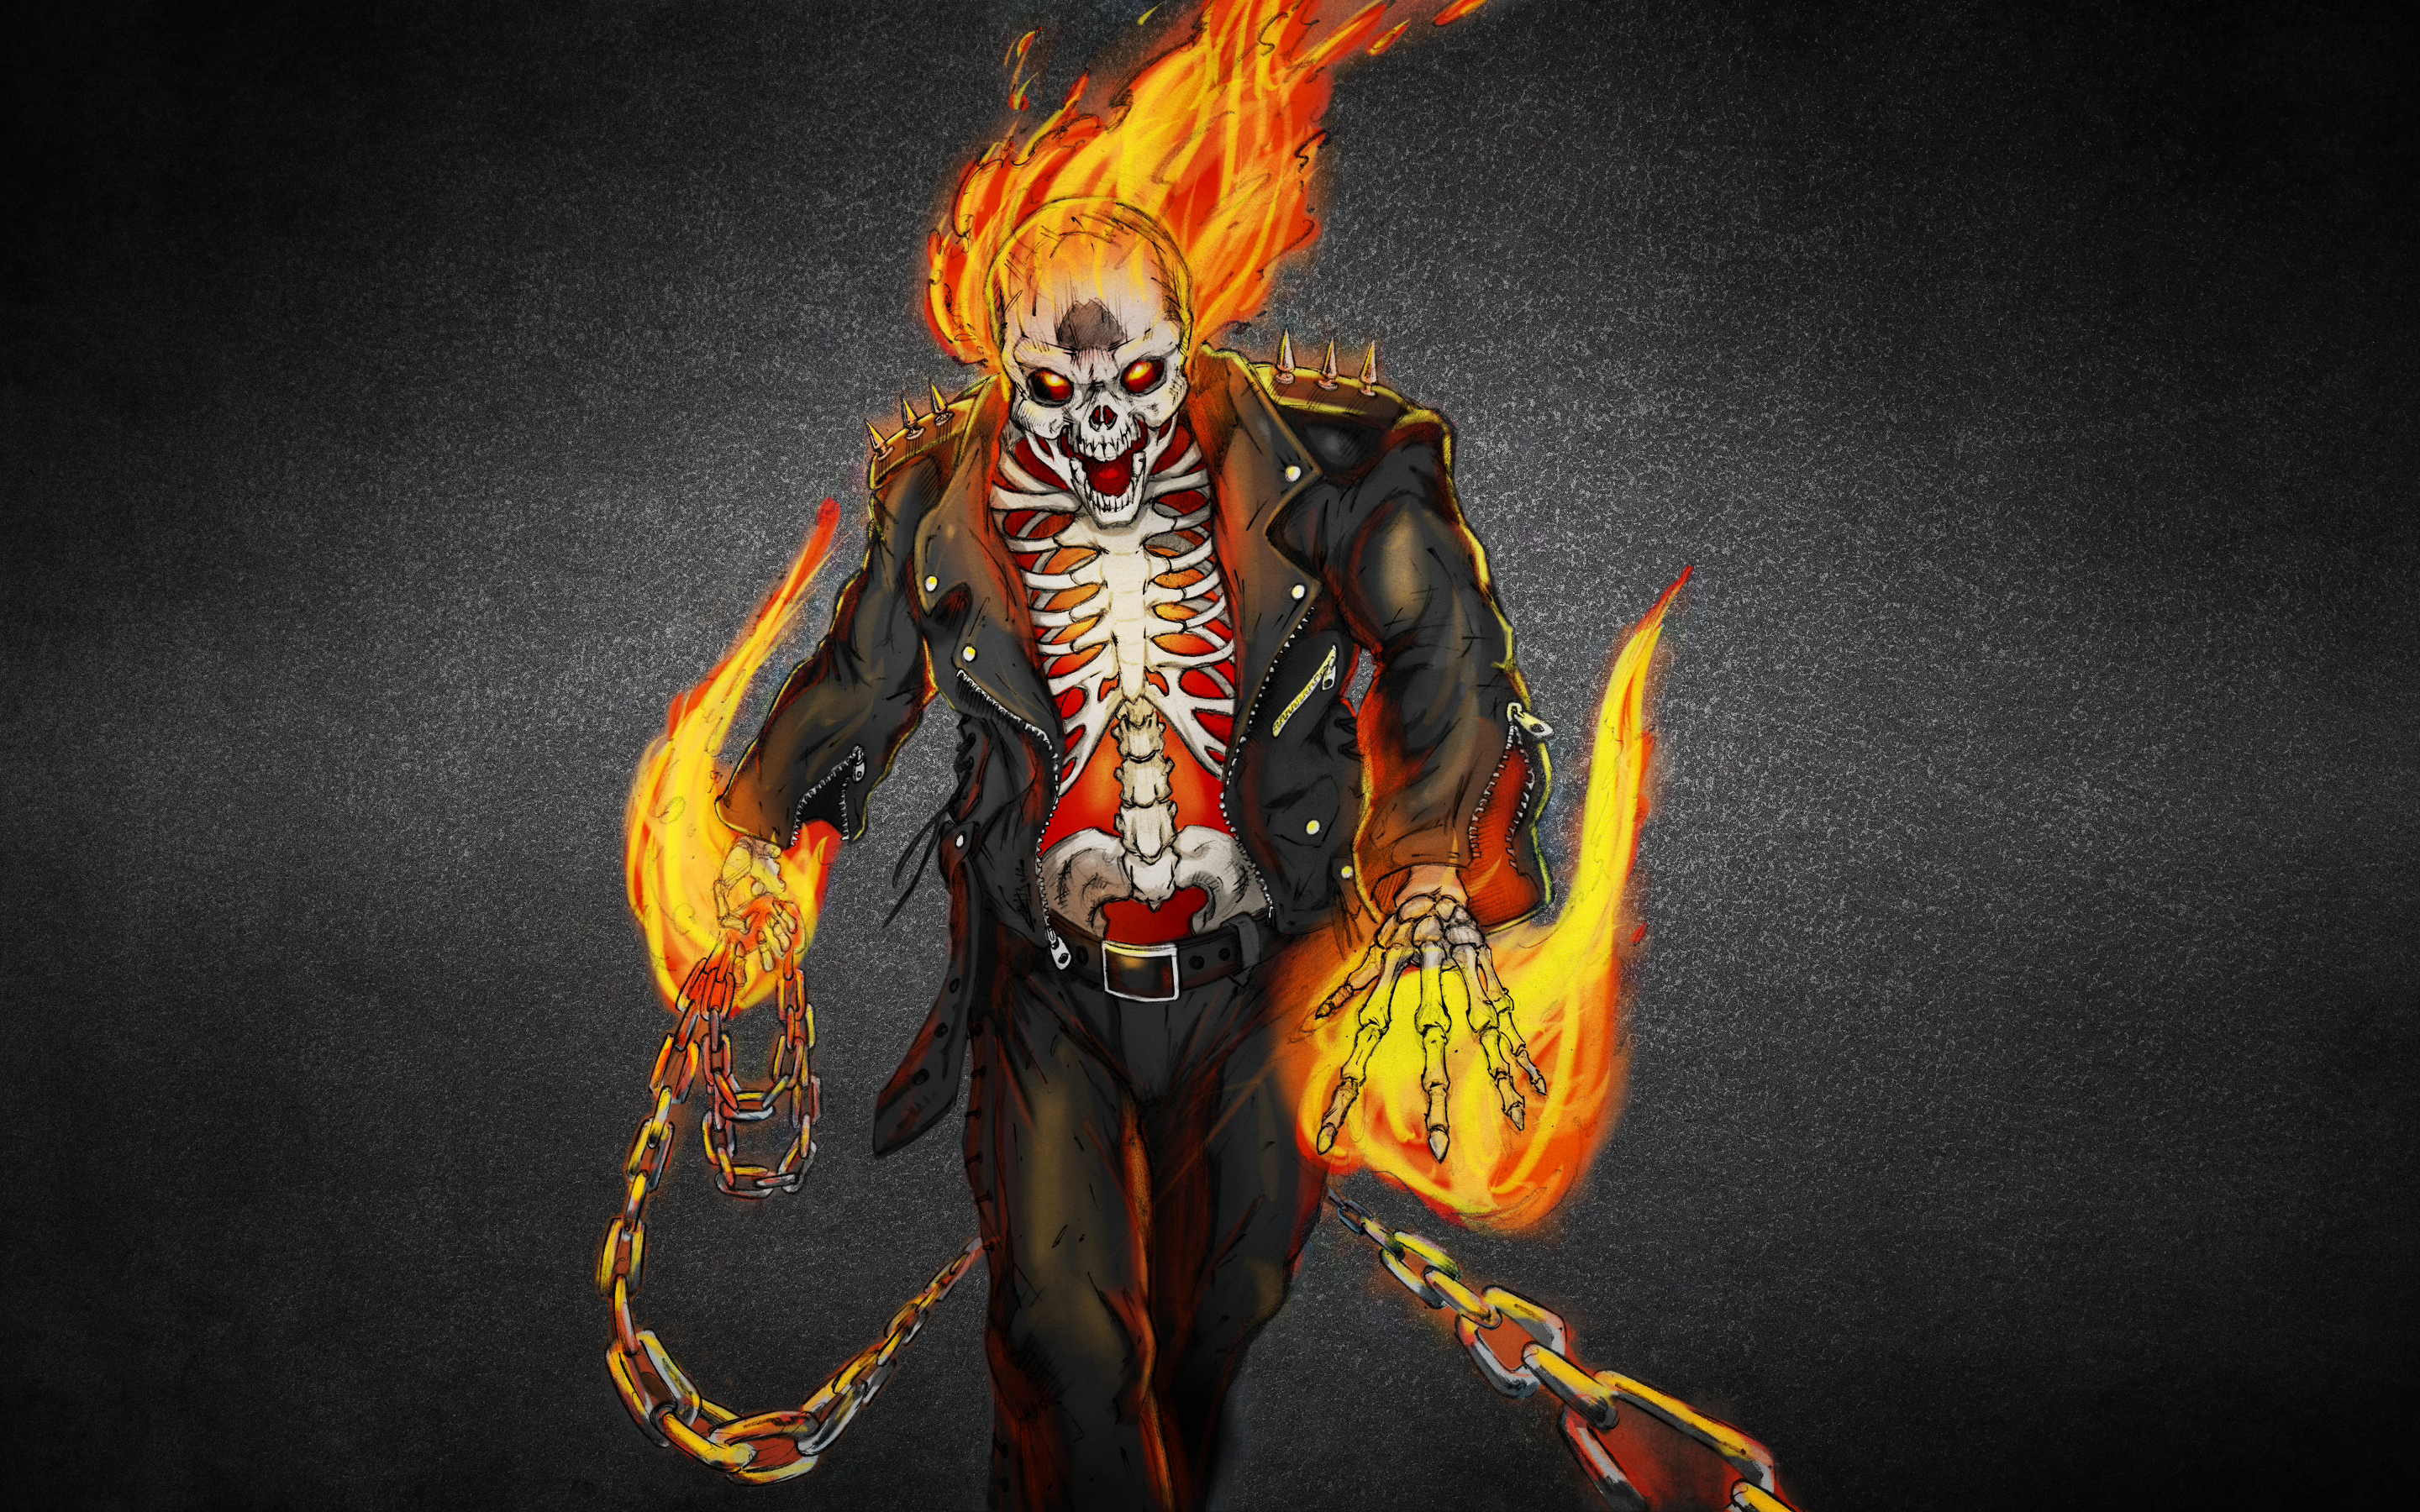 fire flame skull dark background wallpapers photos pictures 2880x1800